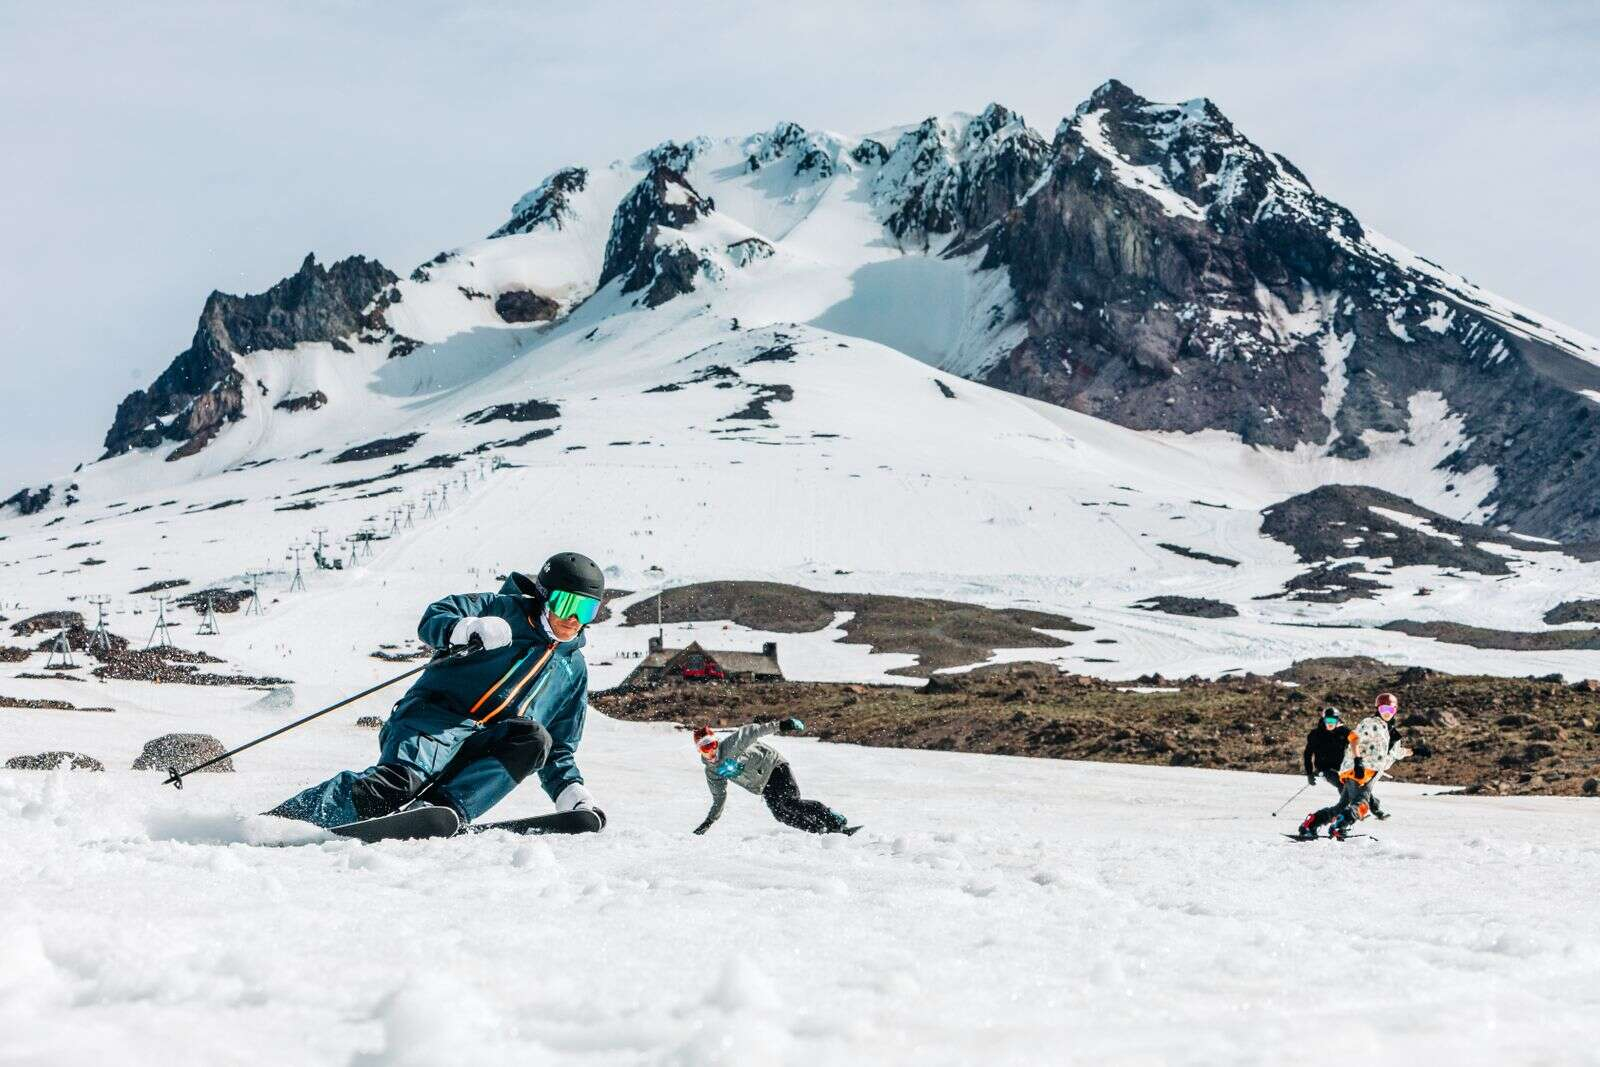 US alpine skier and Olympic gold medalist Bode Miller tests out the new 2020-21 Crosson skis on Mount Hood, Oregon.